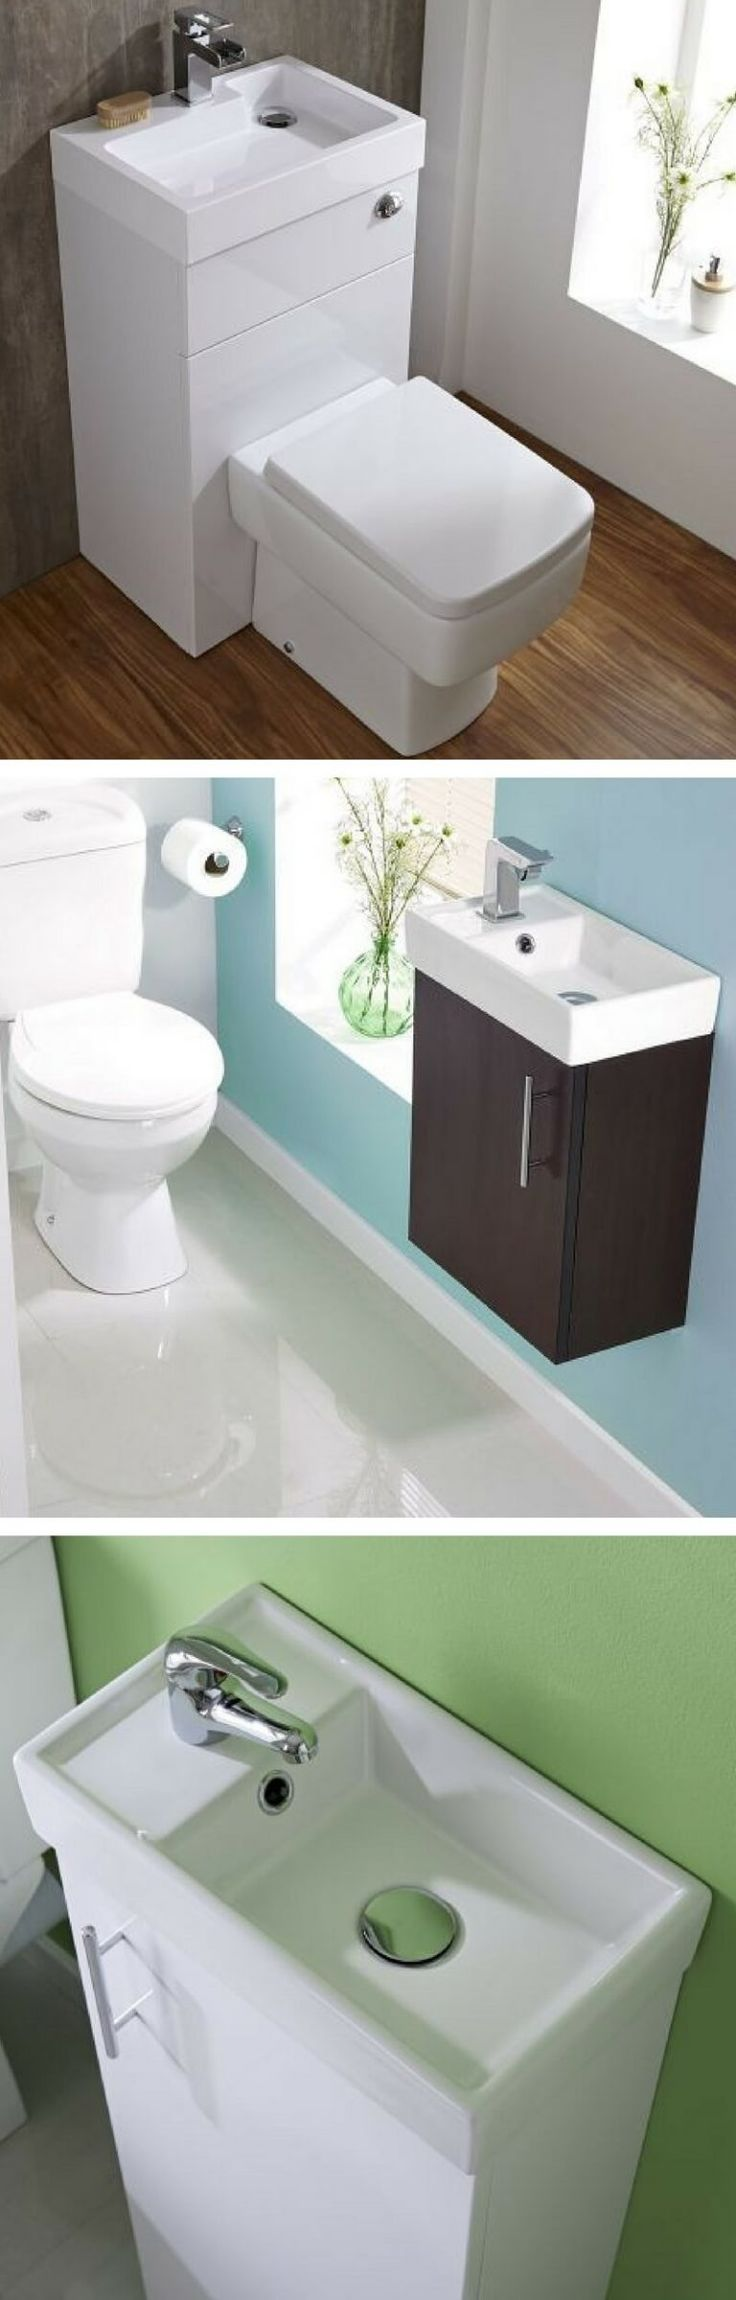 Bathroom sinks with options for everyone - Why A Cloakroom Basin Is Essential For A Small Bathroom Makeover